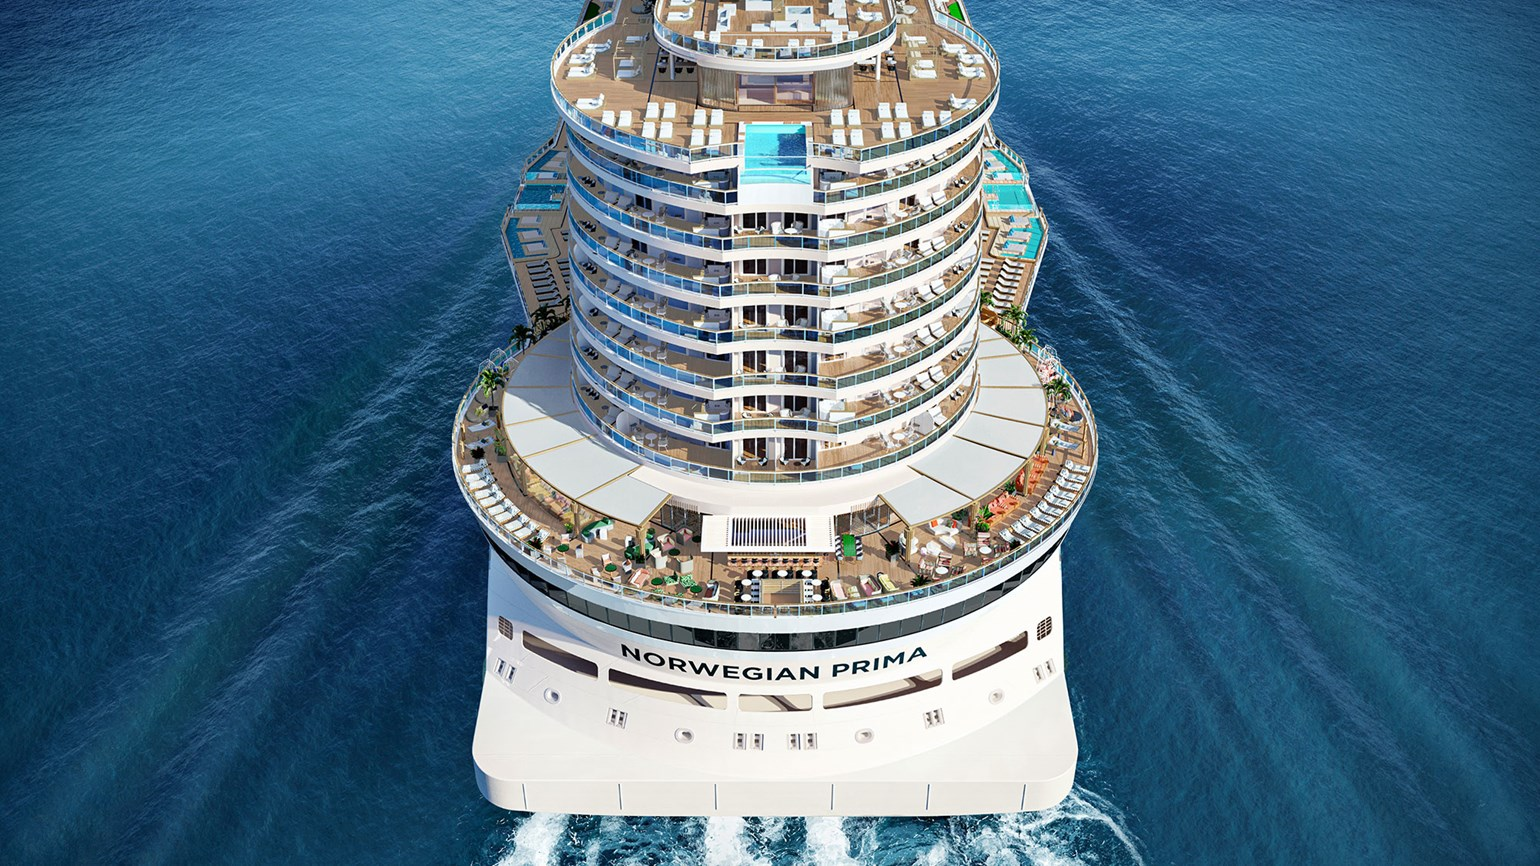 Details of Norwegian Prima revealed: Outdoor space, bigger cabins